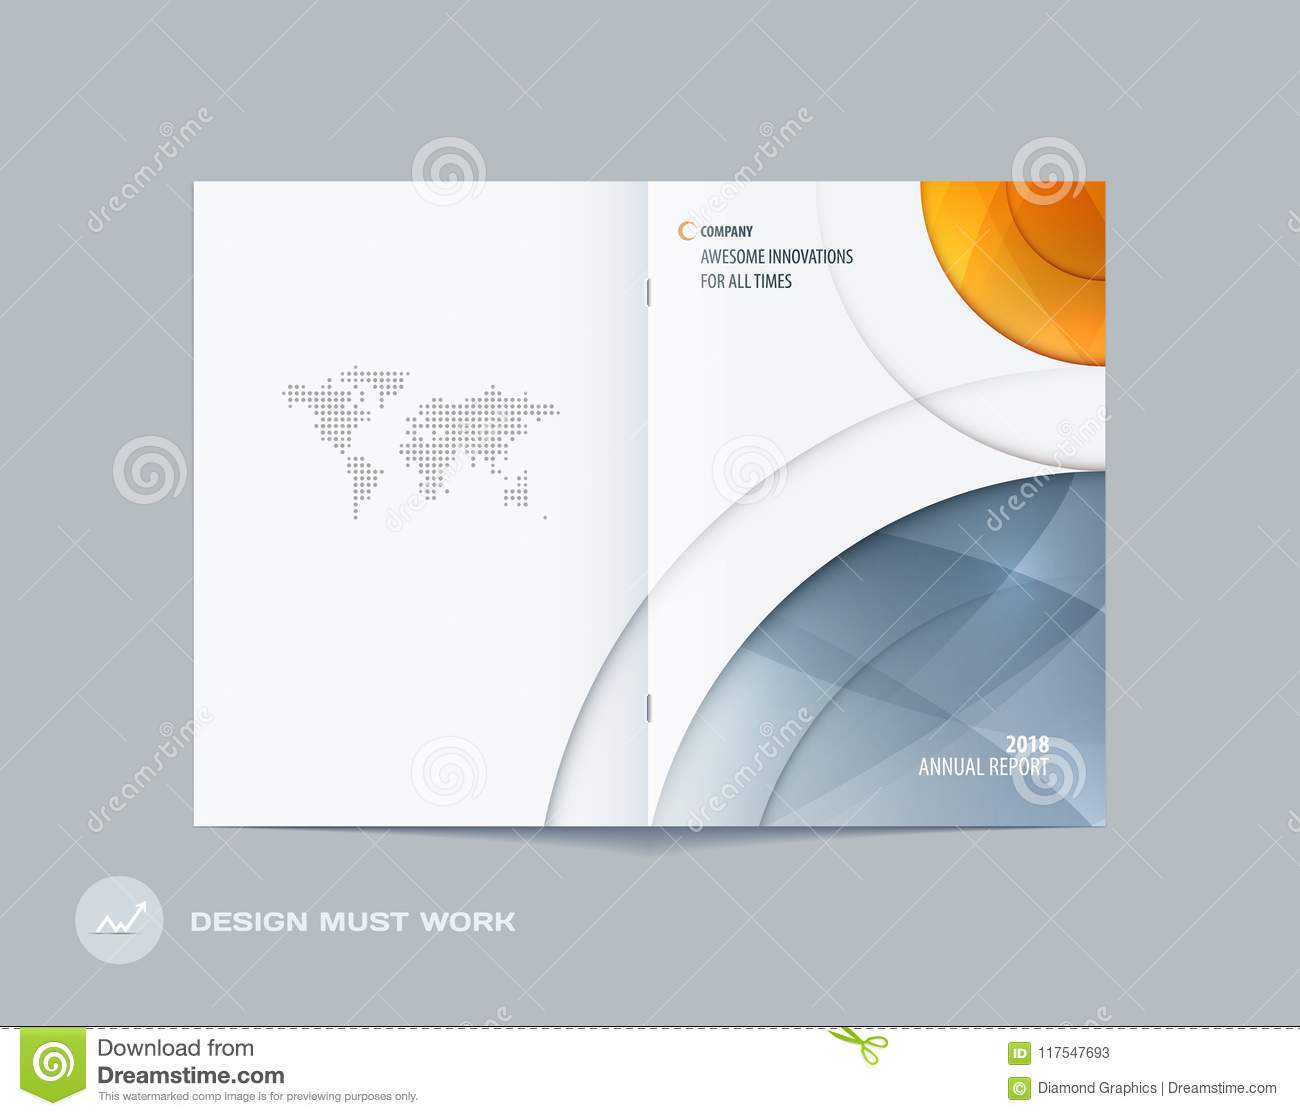 Abstract double-page brochure design round style with colourful circles for branding. Business vector presentation